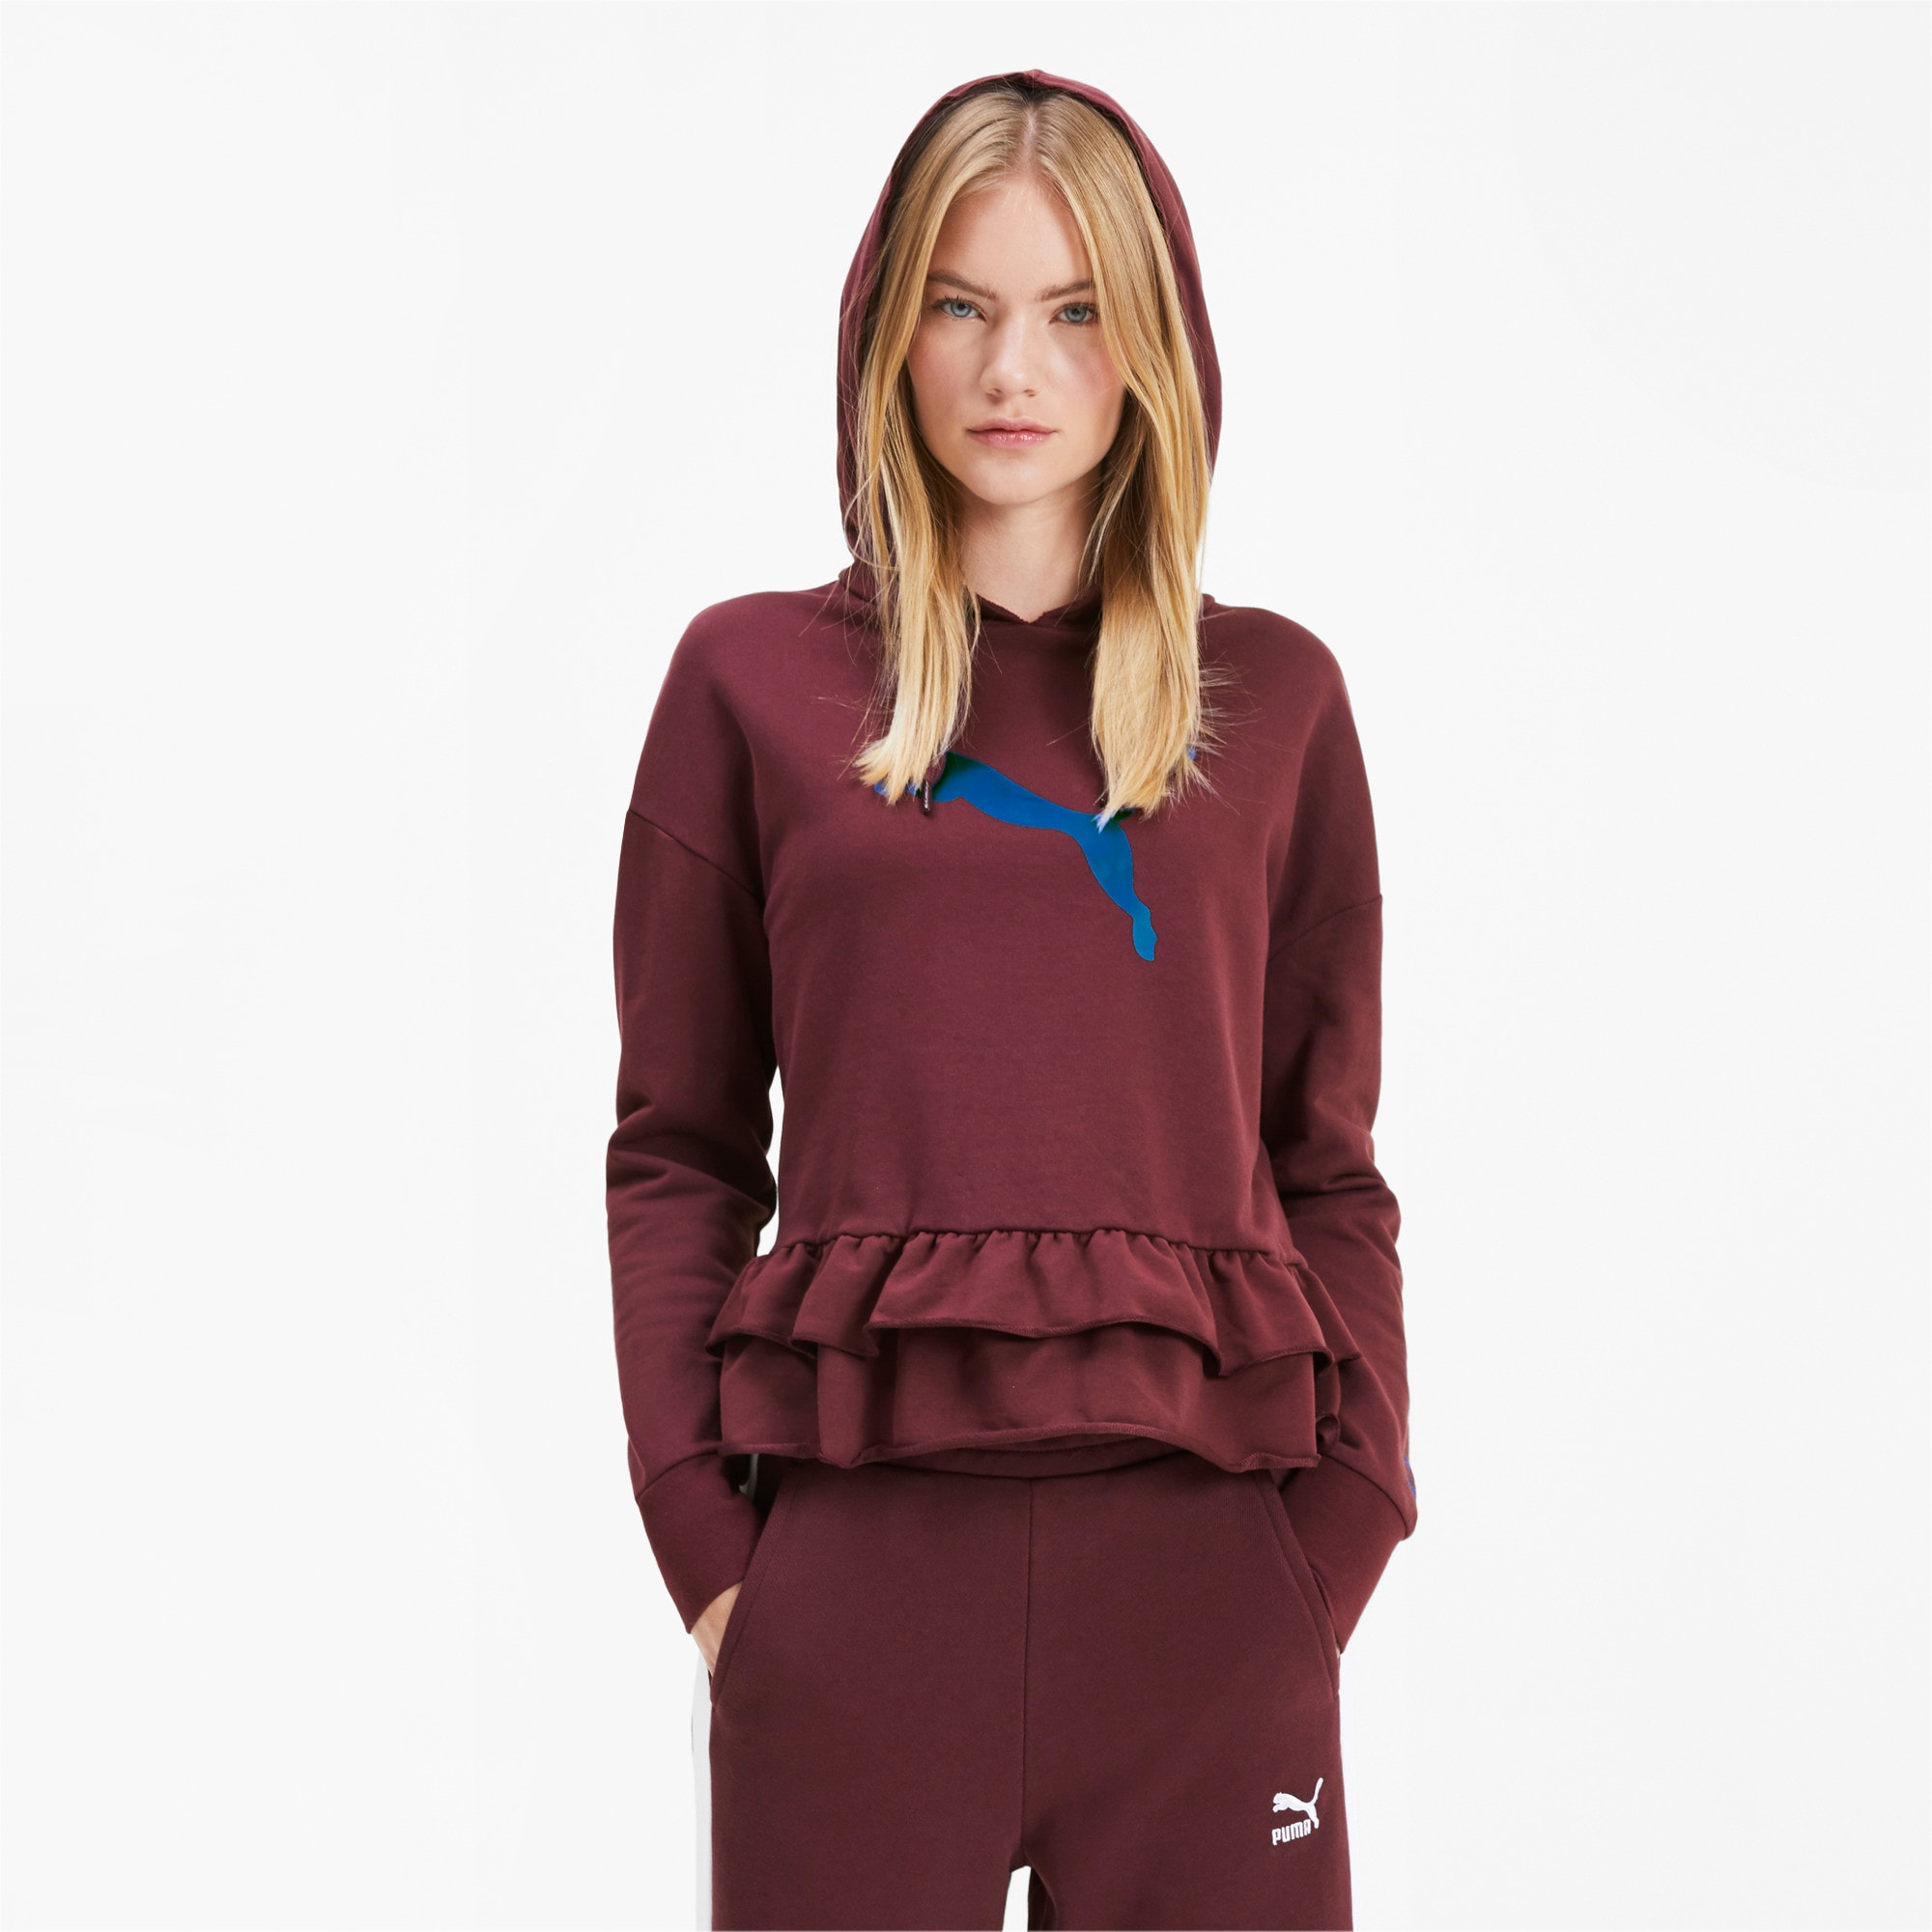 PUMA x TYAKASHA Damen Hoodie, Vineyard Wine, large